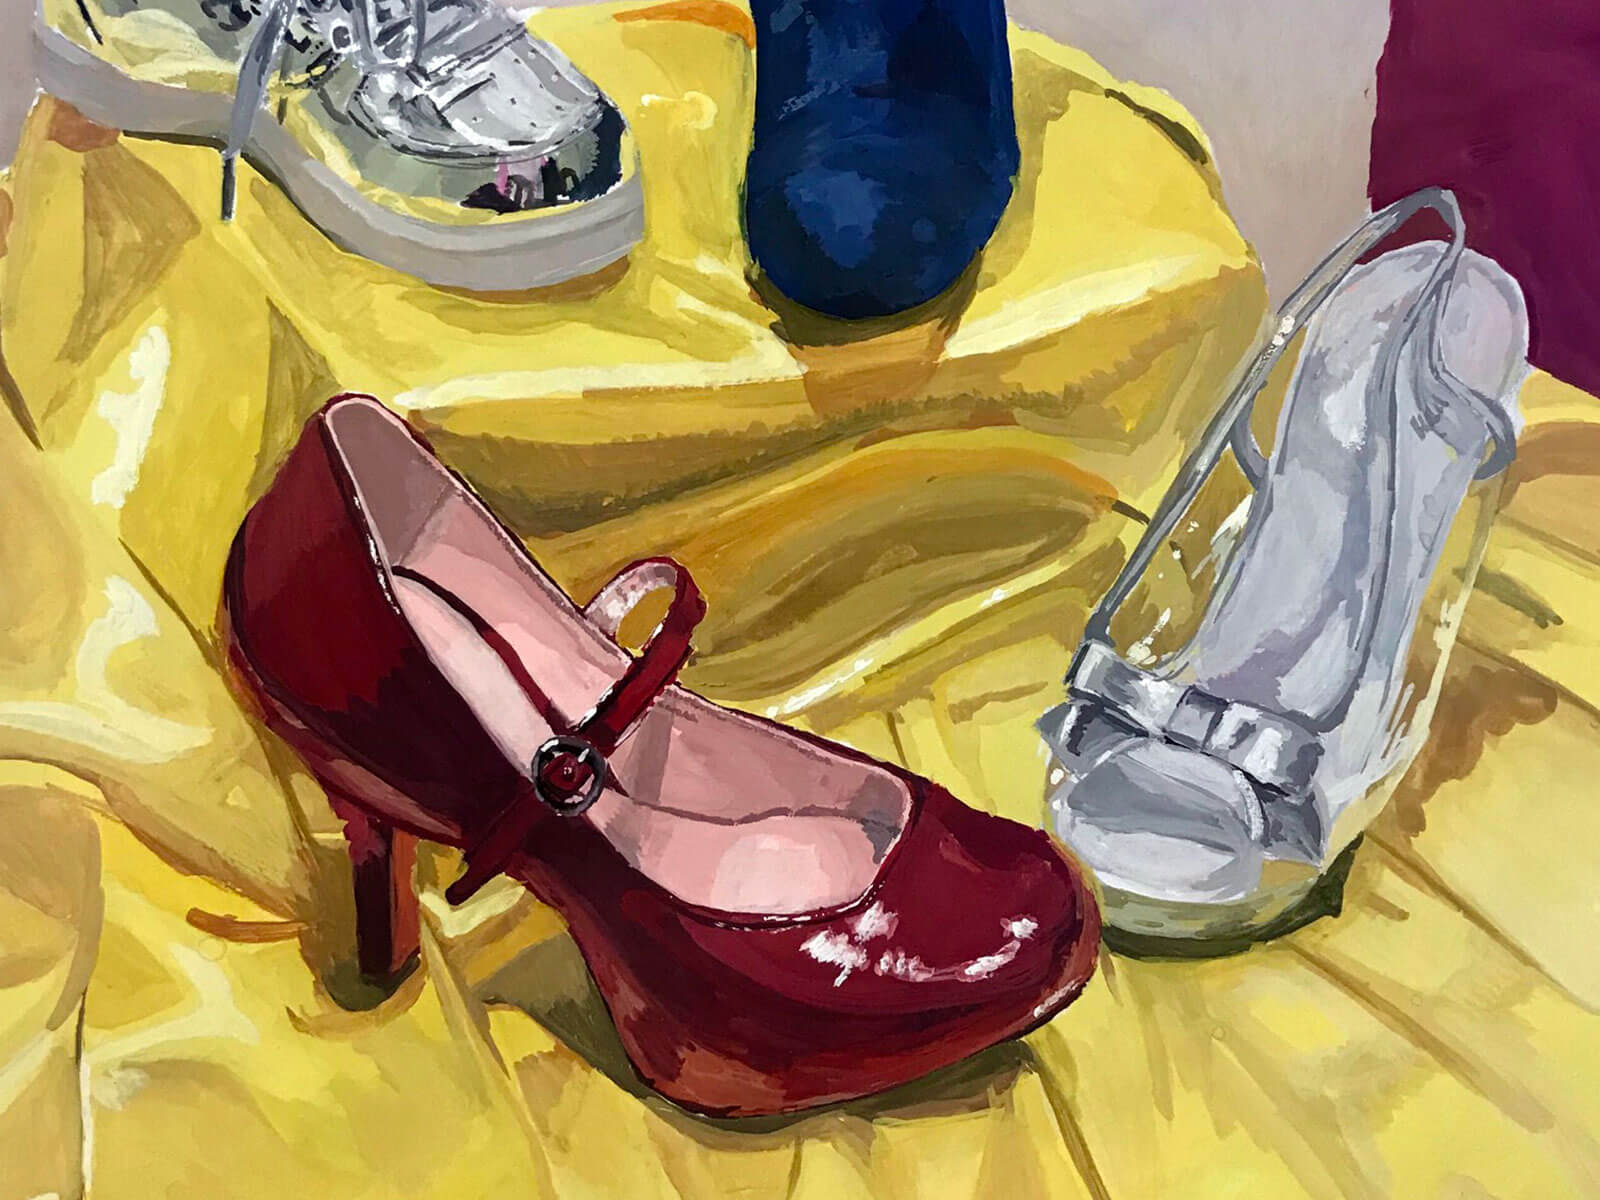 Various shoes, including high-heeled red and sliver, on a yellow cloth